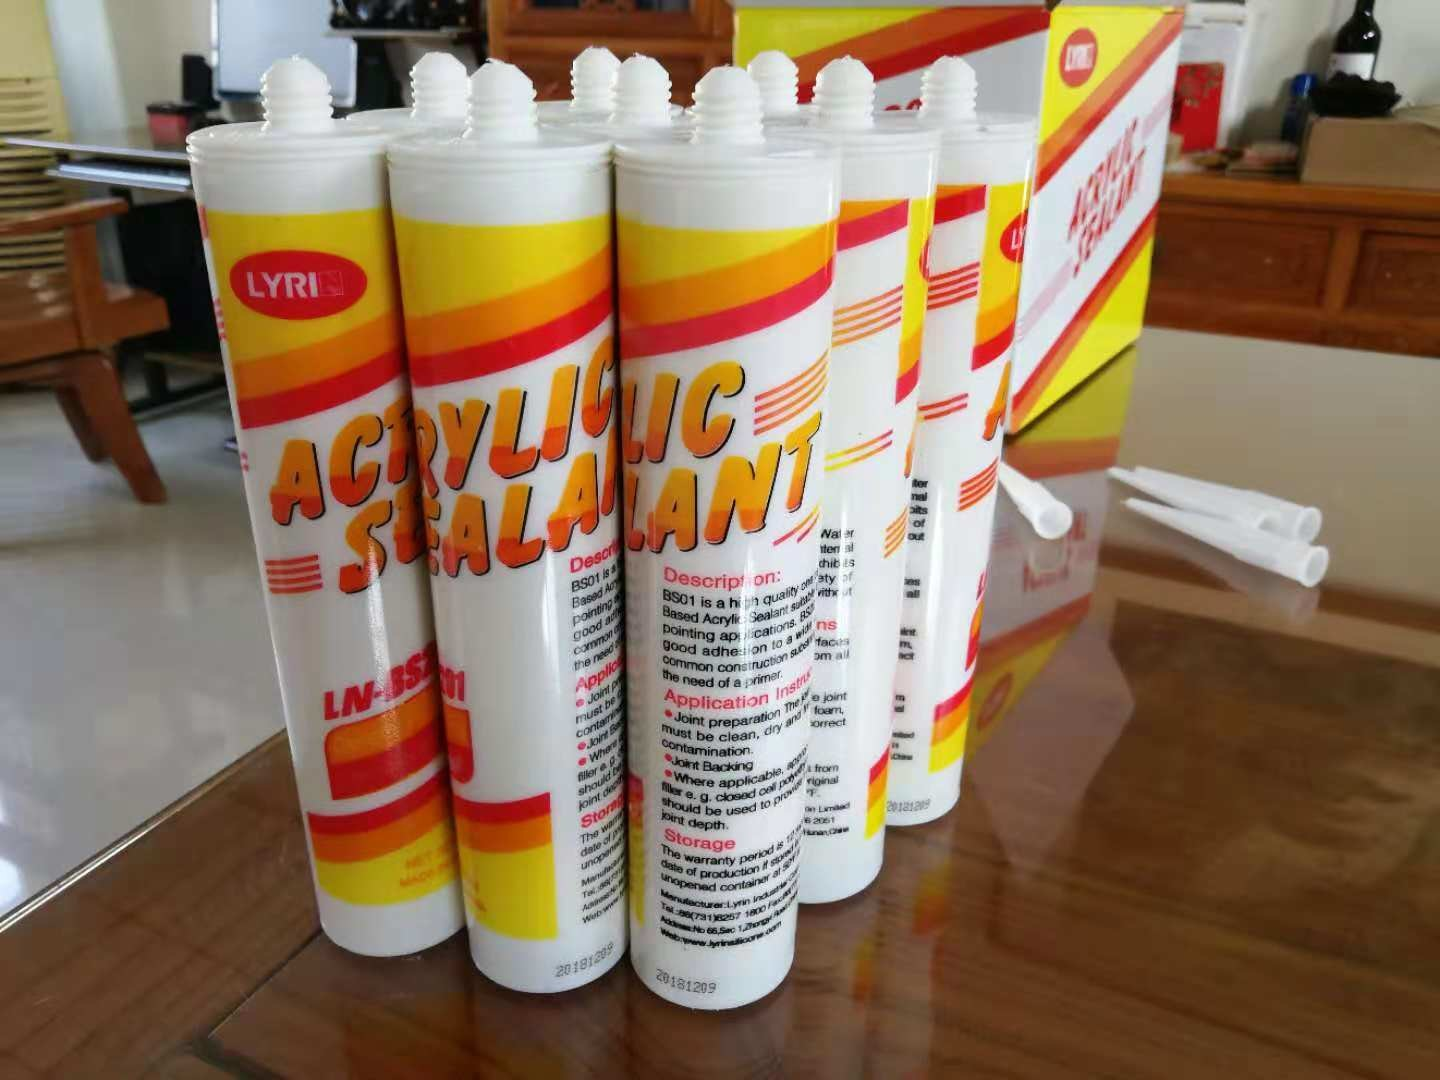 Made in China superior quality acrylic silicone sealant / acrylic adhesive